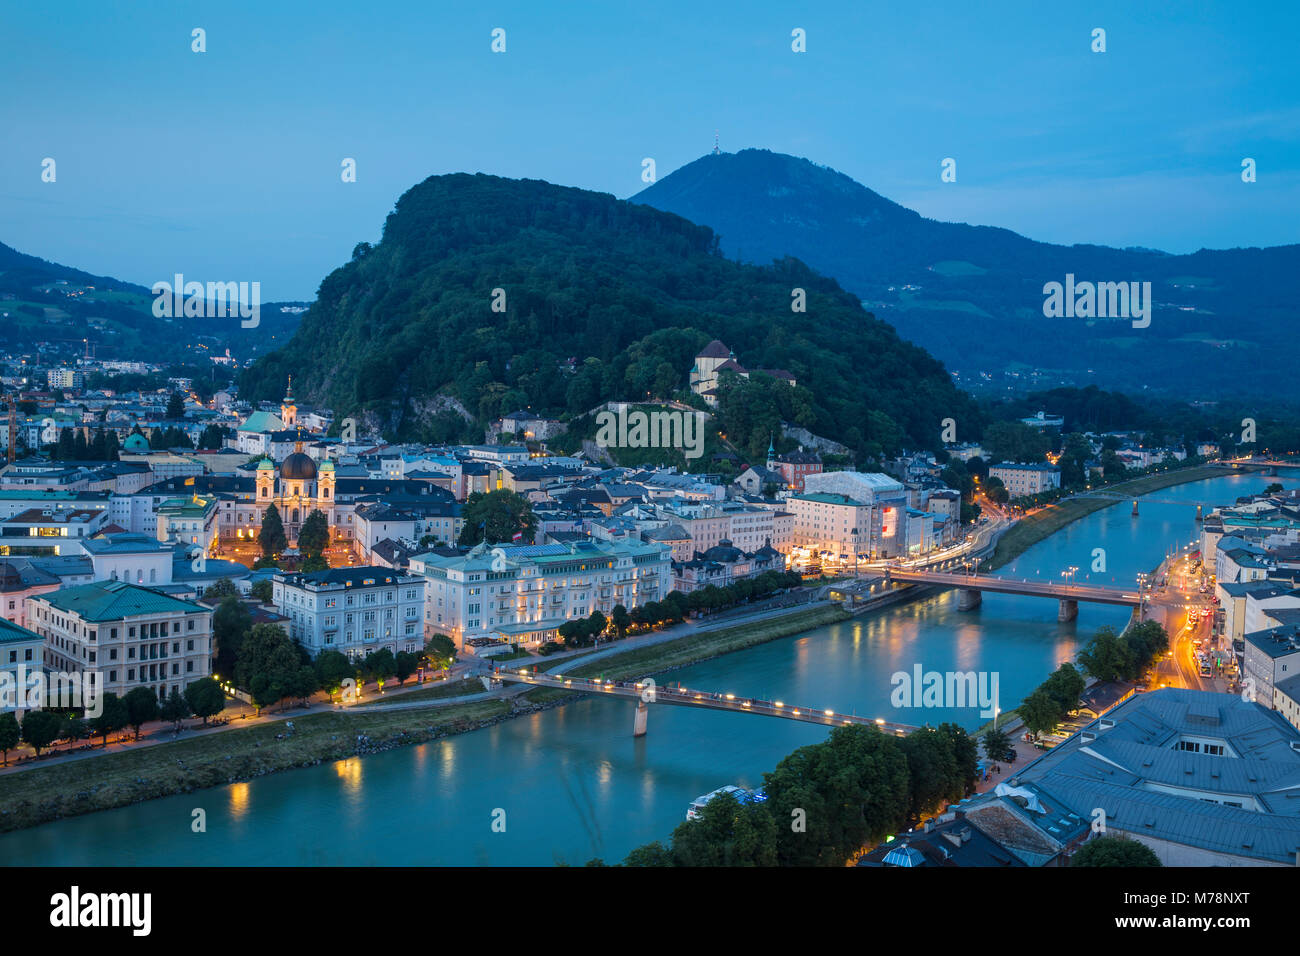 View of Salzach River with The Old City to the right and the New City to the left, Salzburg, Austria, Europe Stock Photo